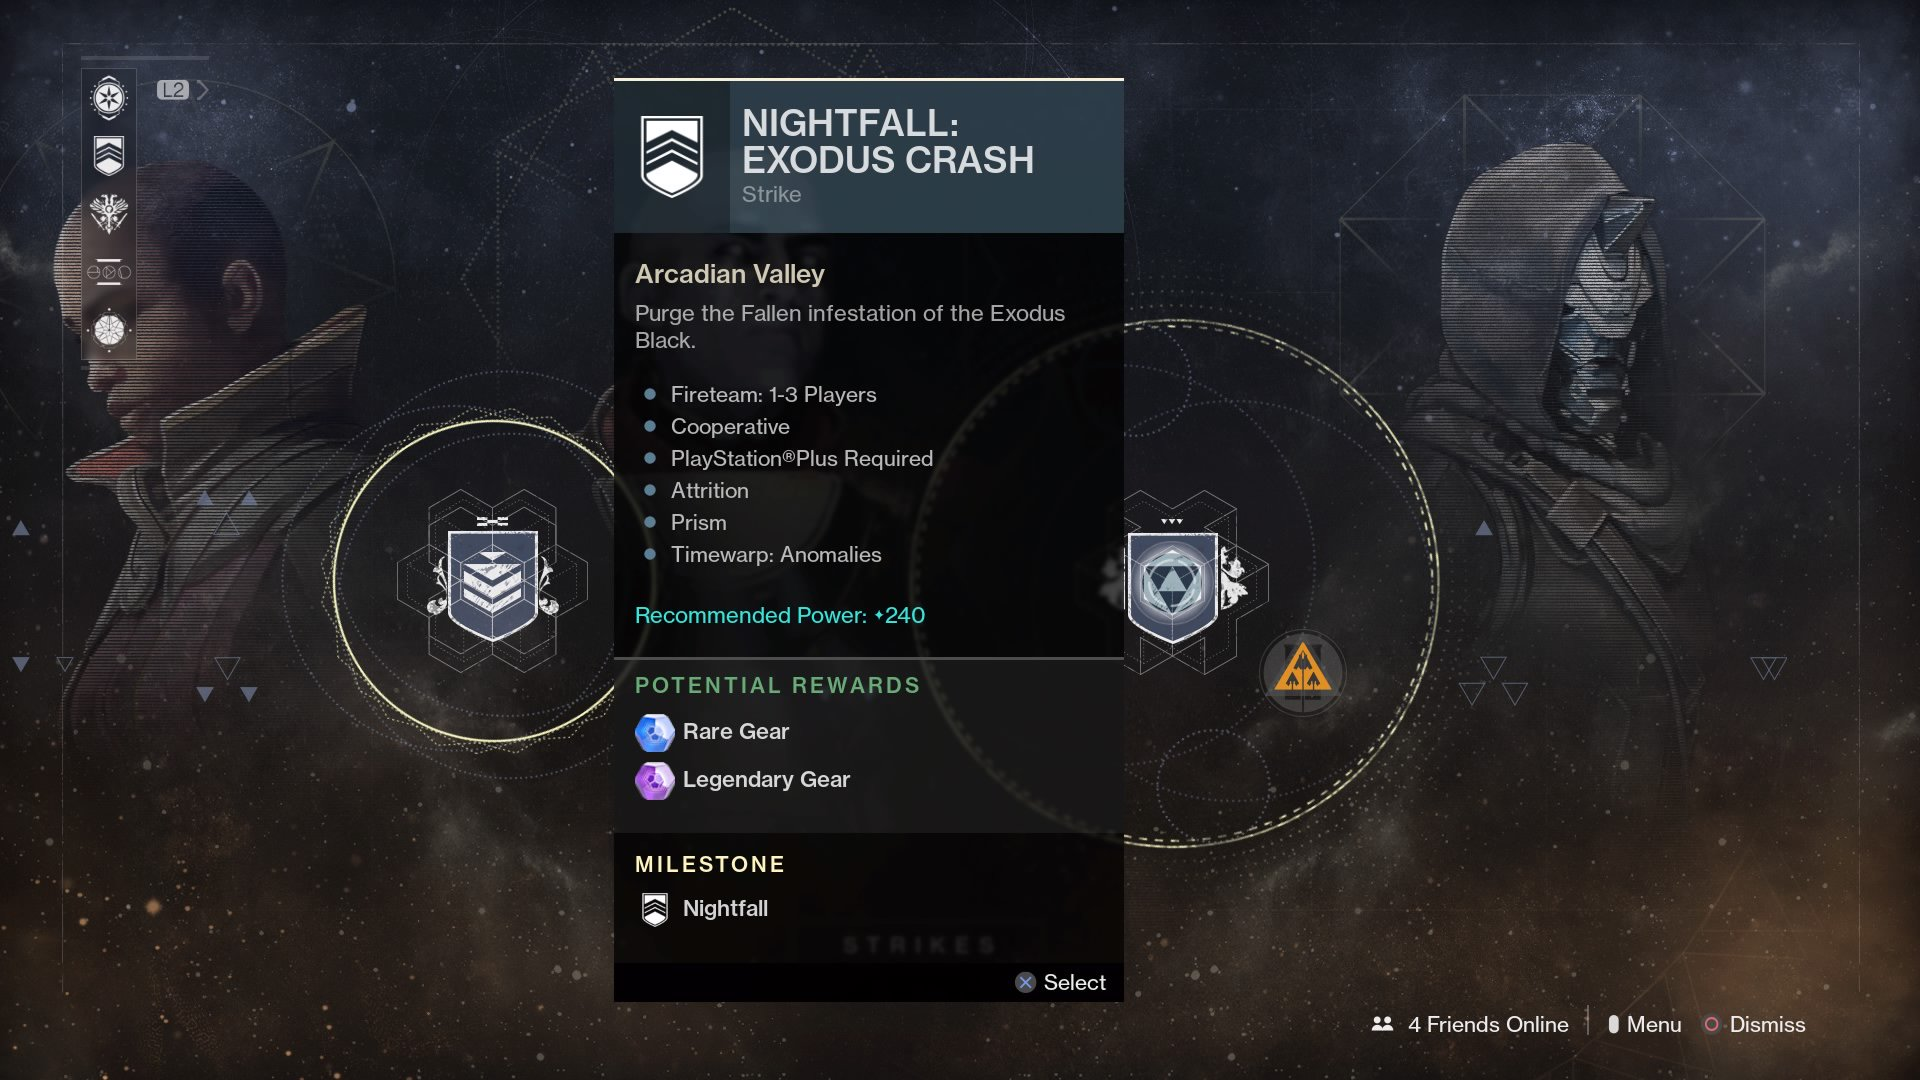 Destiny 2 Weekly Reset September 19th 2017 - Nightfall, Flashpoint